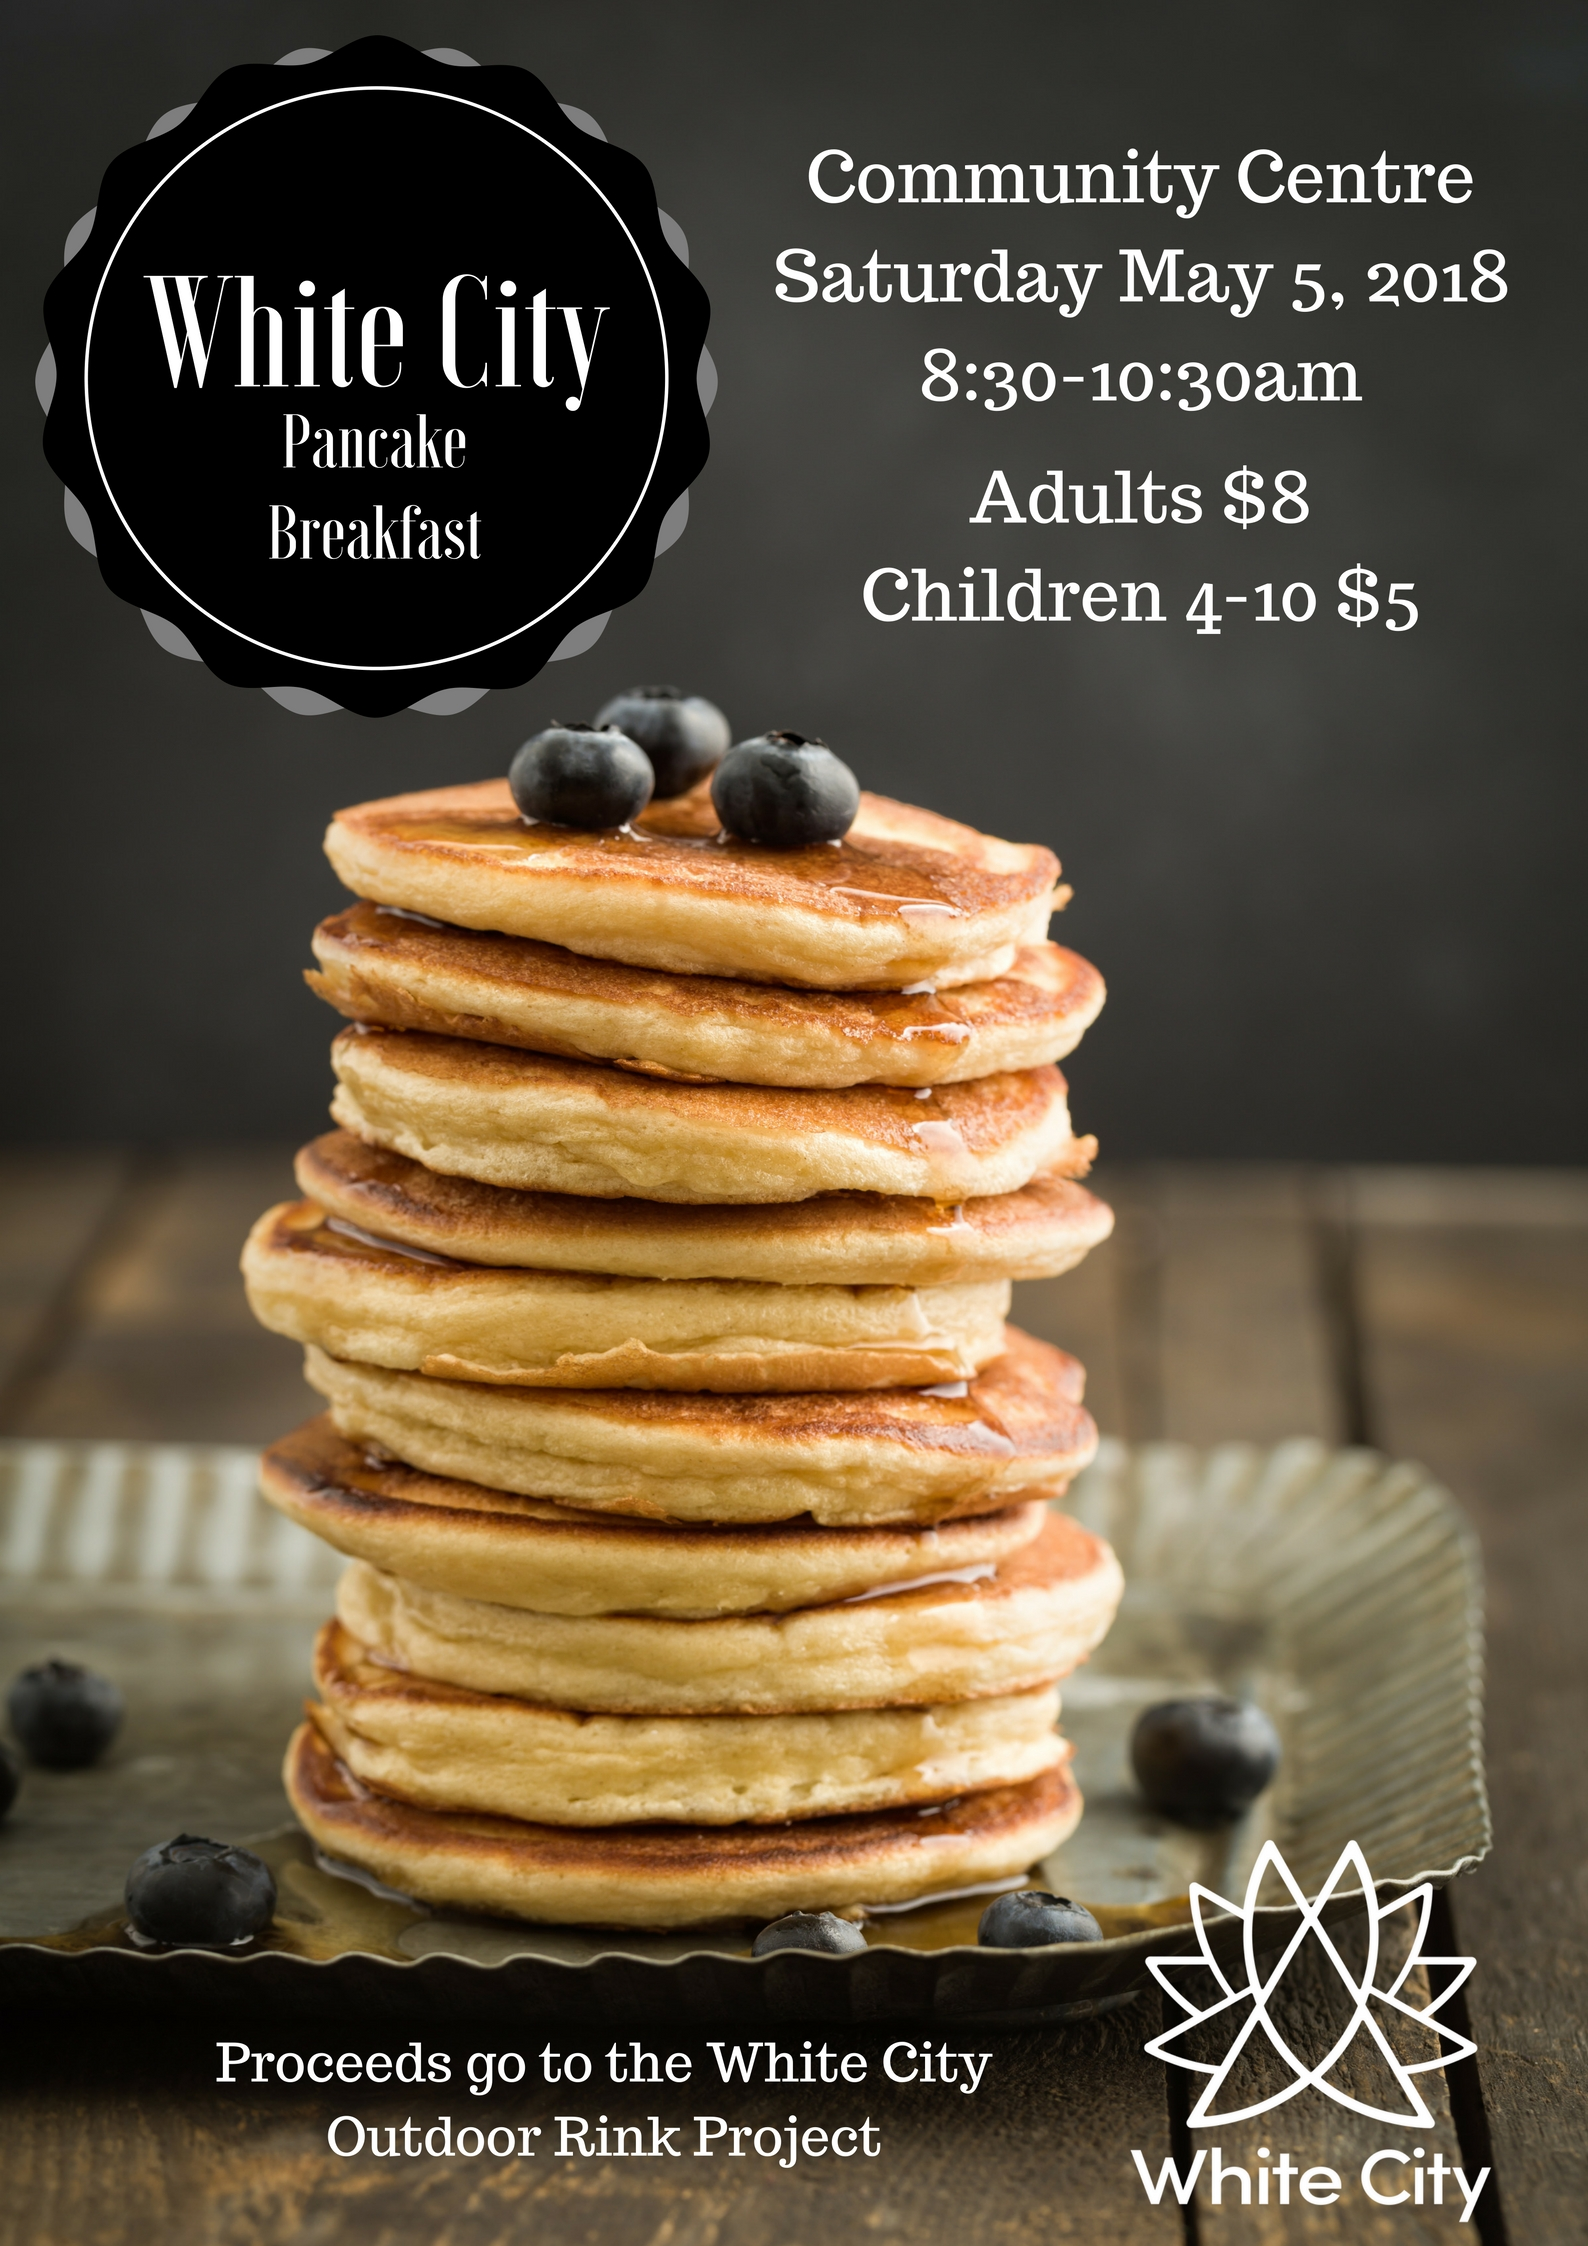 Volunteers Needed for Pancake Breakfast on May 5 - Image 1